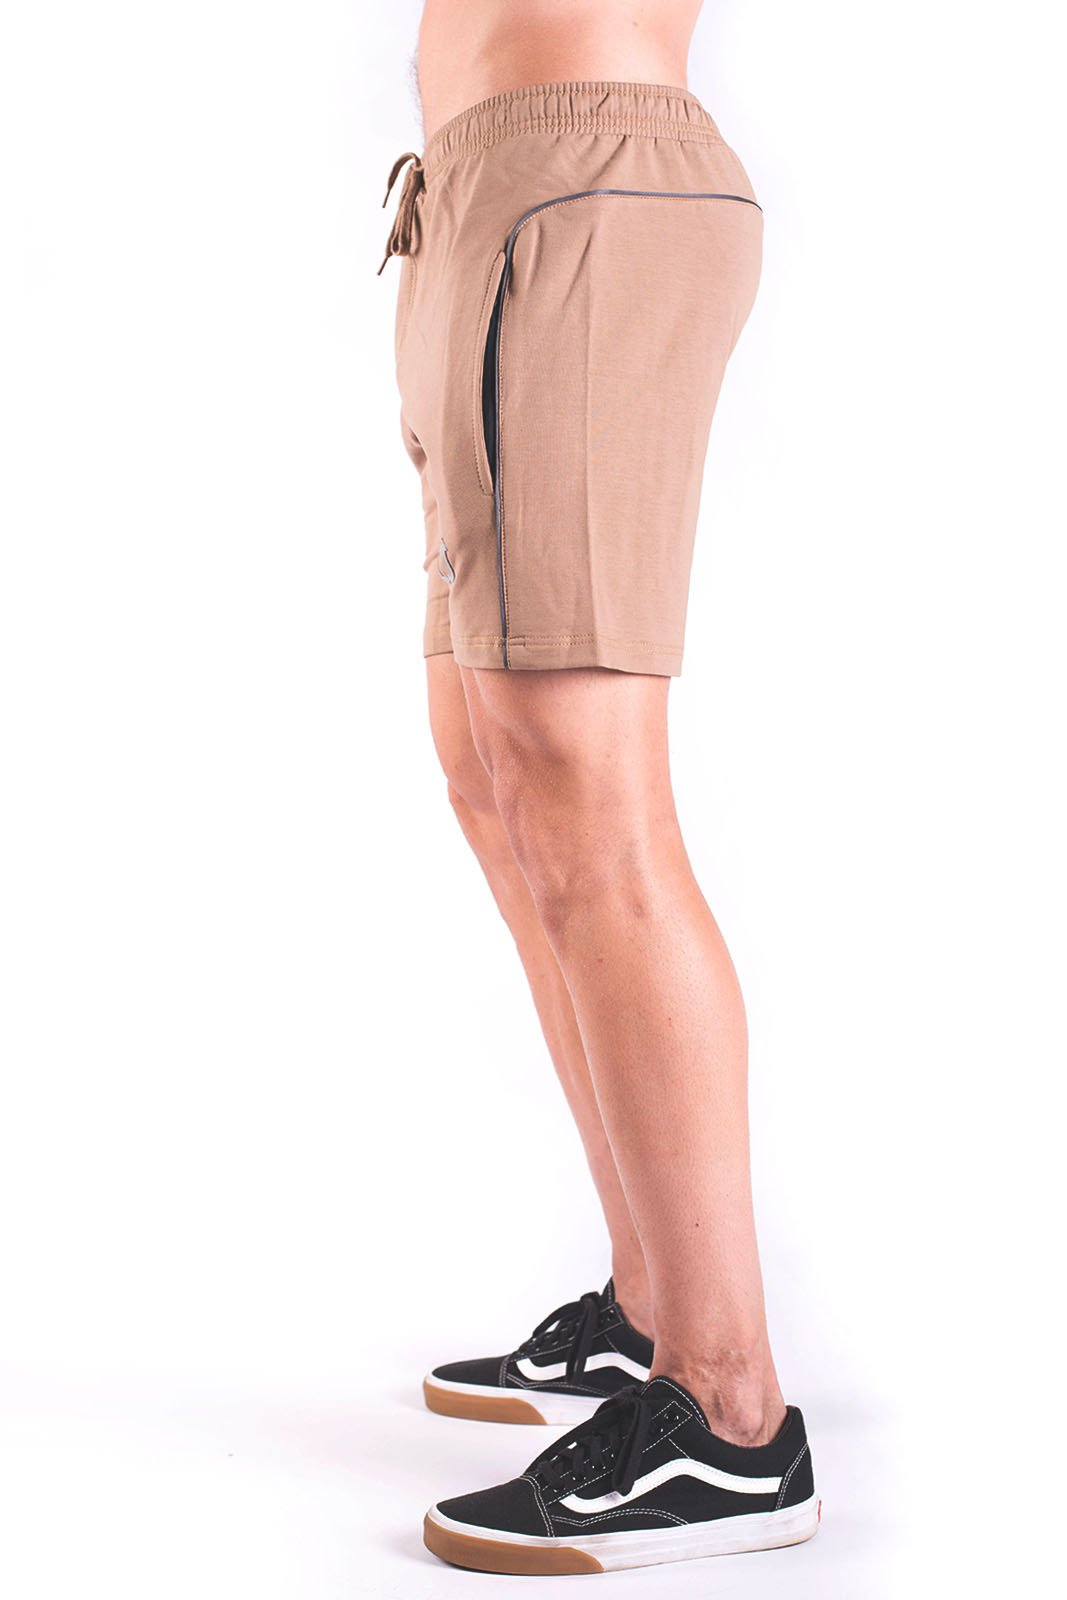 Twotags Rove Trim Sweat Shorts - Dark Tan